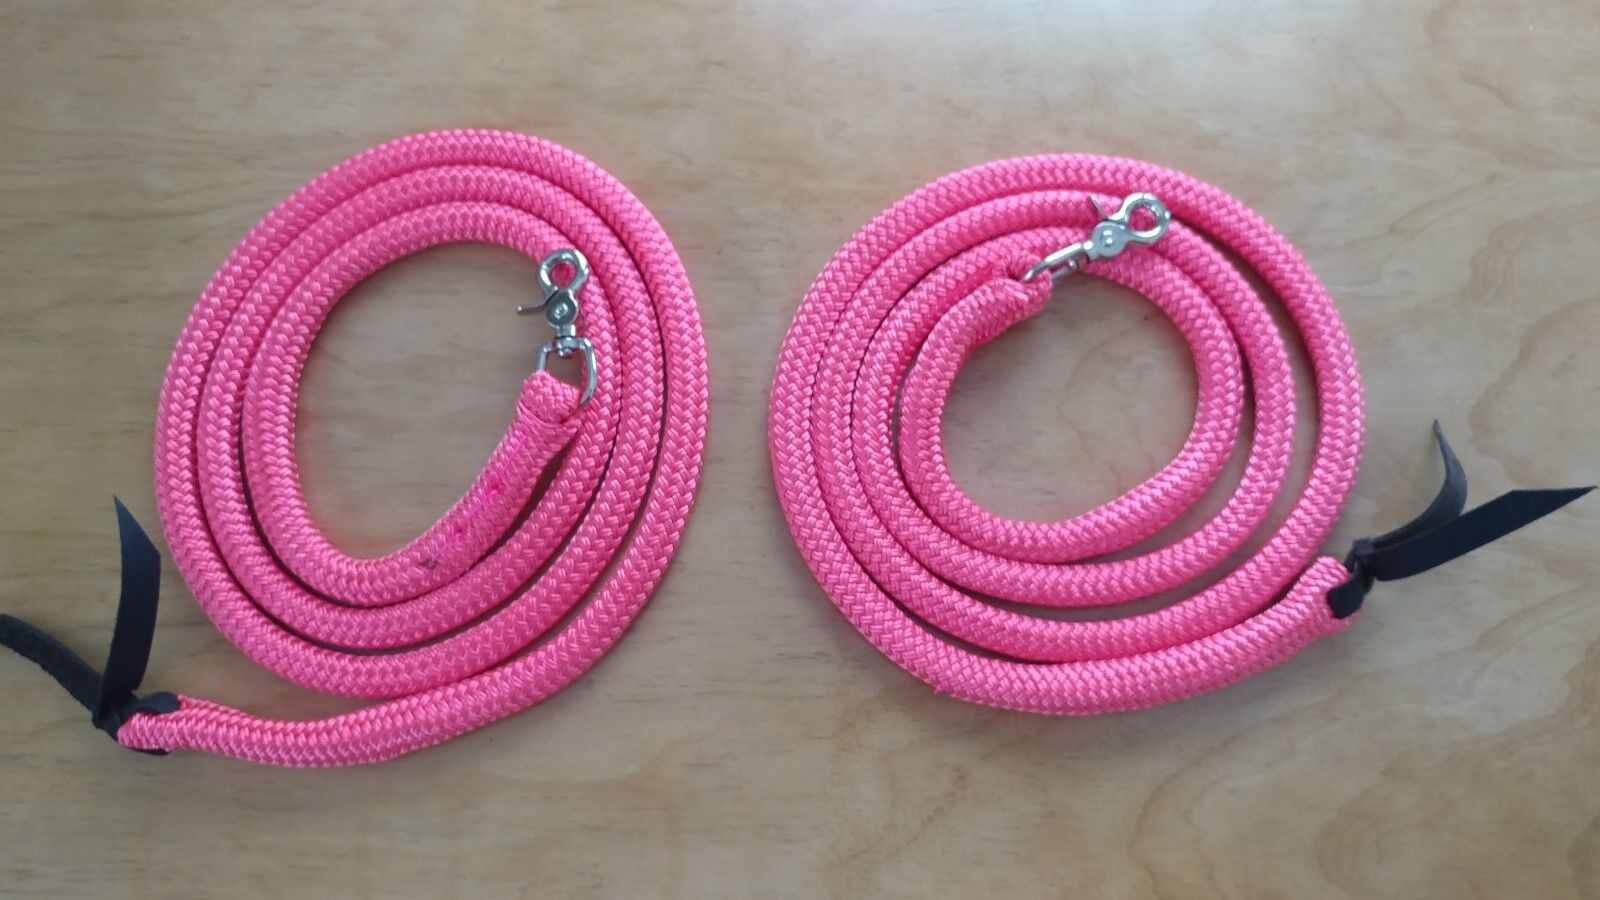 7'  YACHT ROPE SPLIT REINS, MANY AVAILABLE COLORS